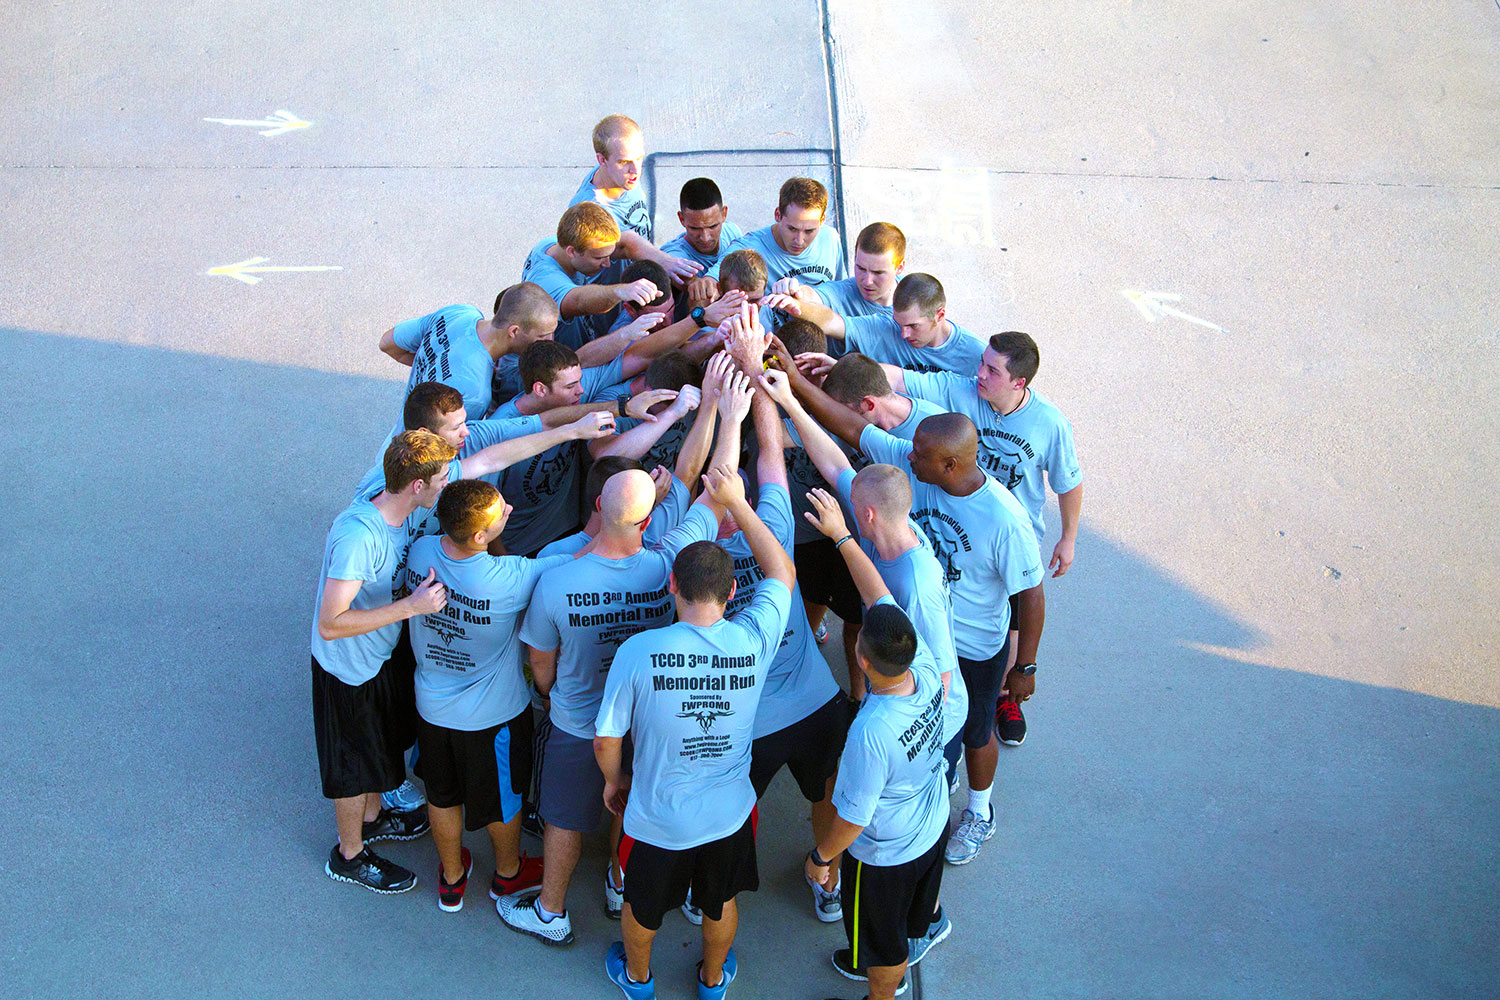 A firefighter academy platoon from the NW Fire Service Training Center huddles after participating in the Memorial Run on Sept. 11. Police cadets and TCC faculty also participated in the run in remembrance of the 9/11 attacks that occurred 12 years ago.  Photo by Yesenia Santillan/The Collegian